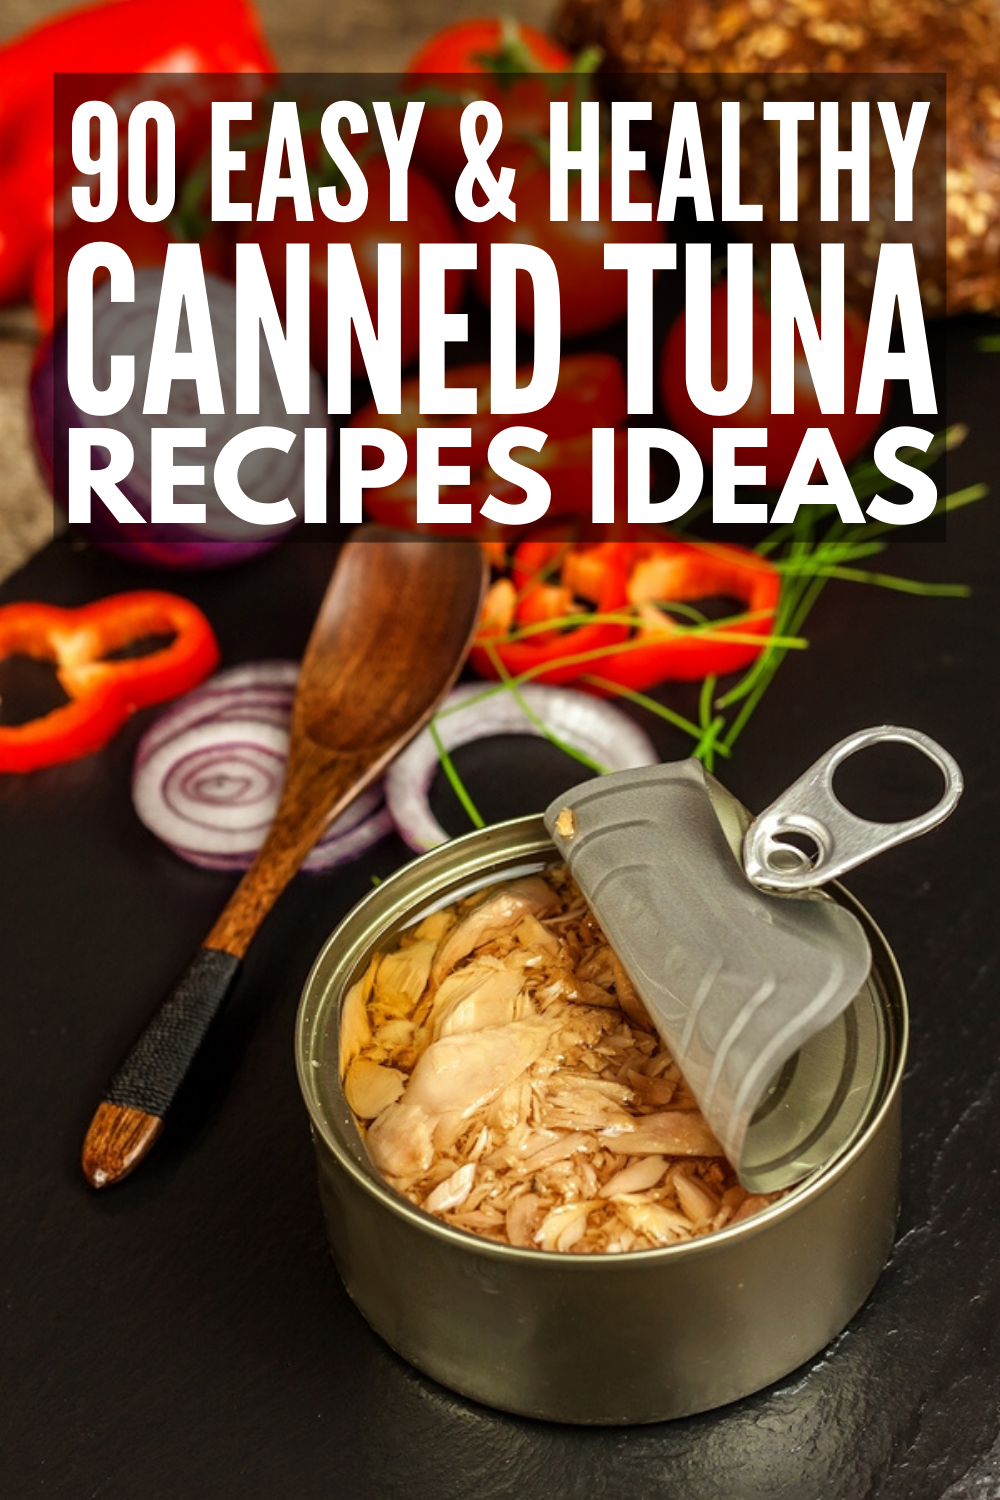 90 Healthy and Easy Canned Tuna Recipes ...